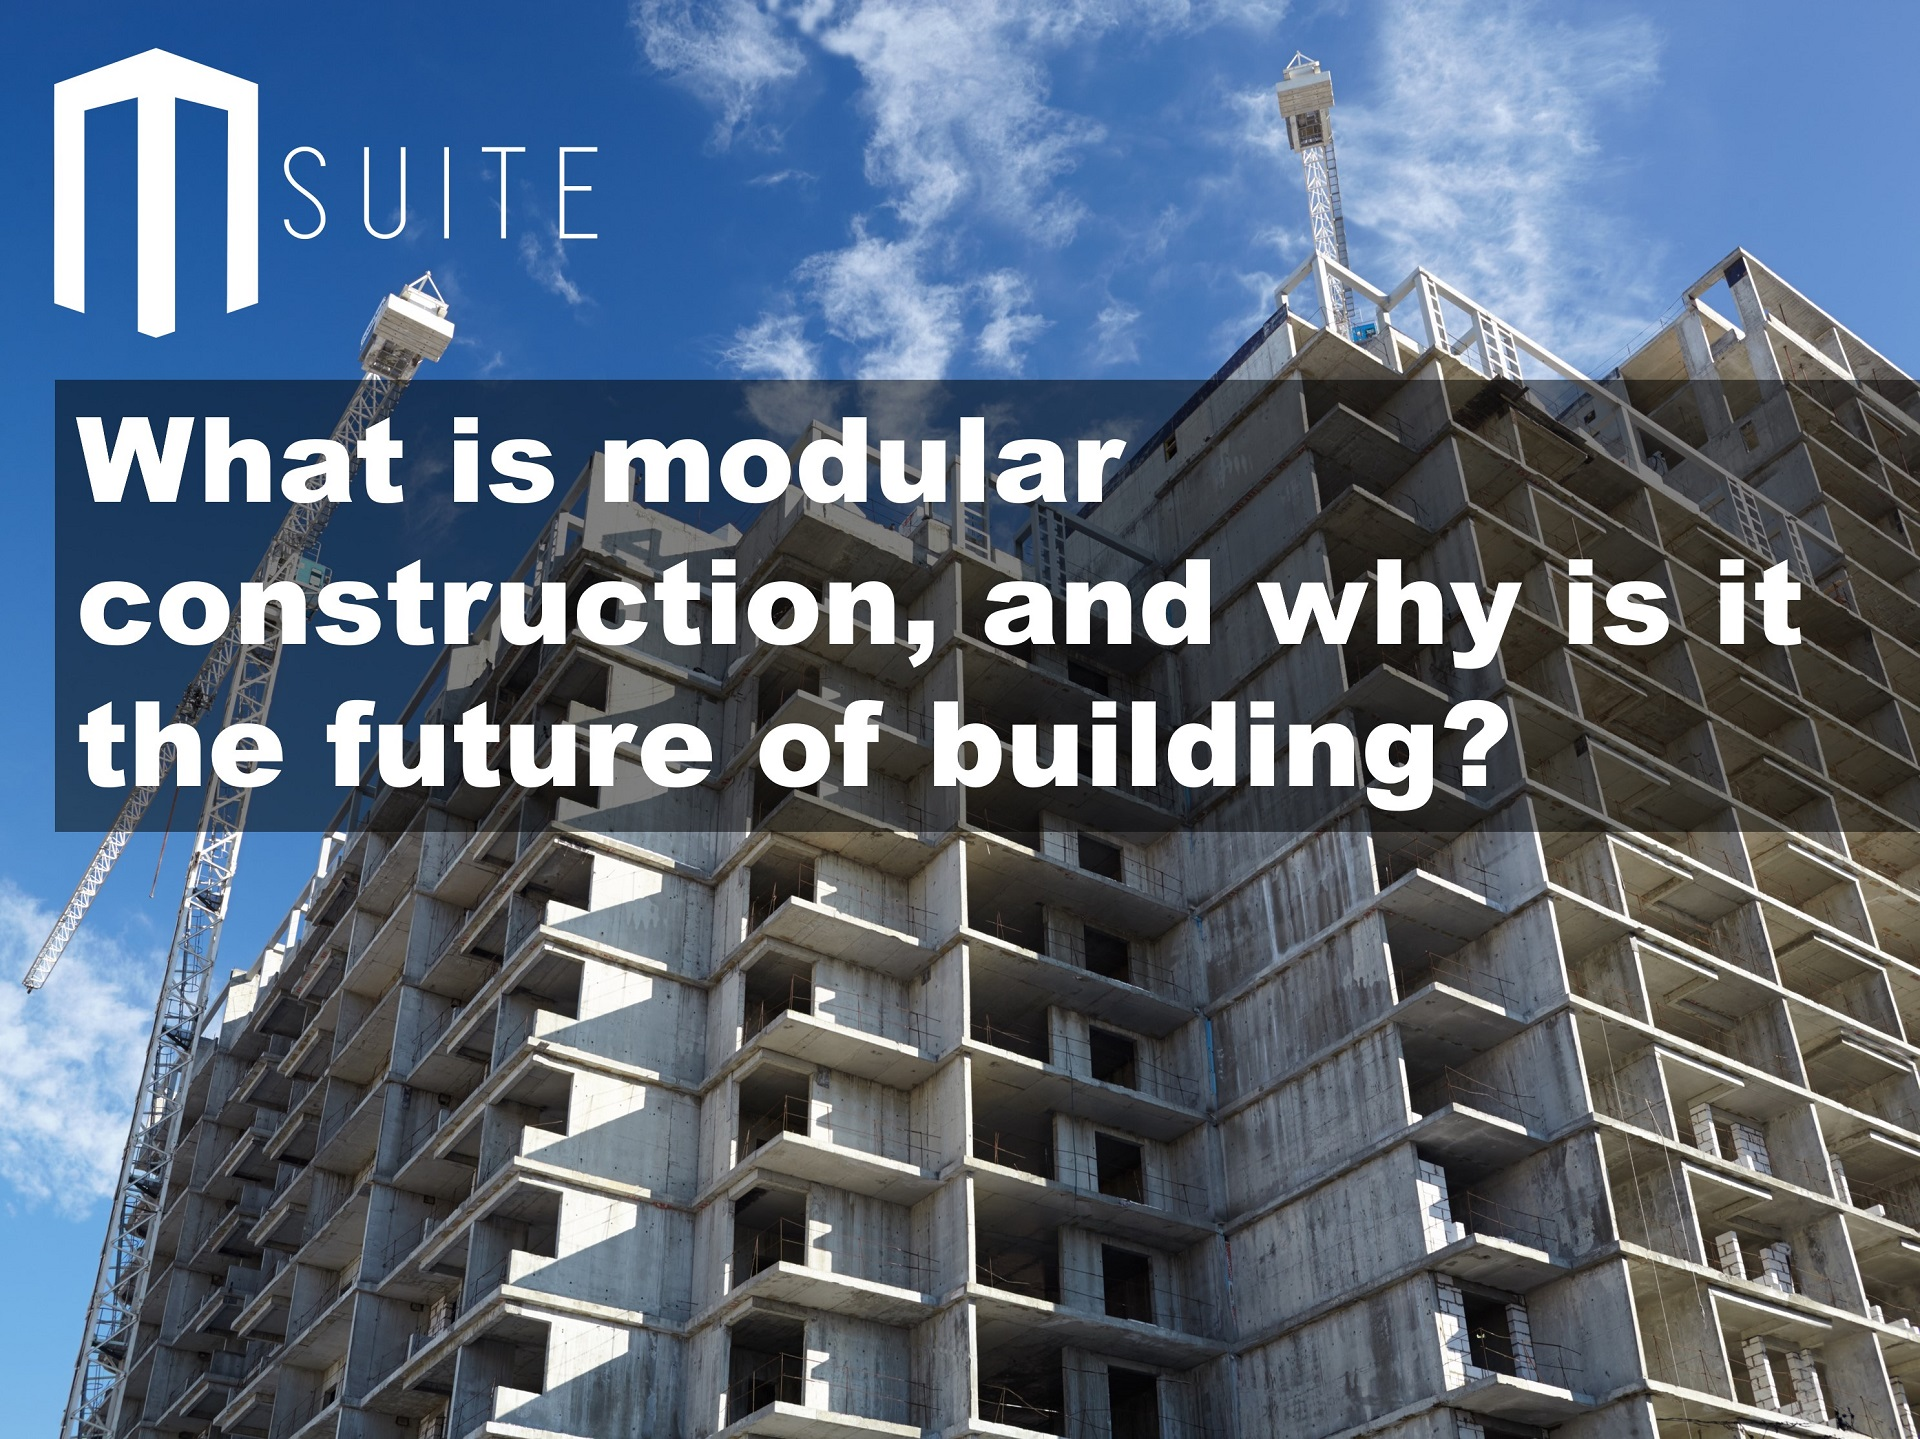 What is modular construction, and why is it the future of building?